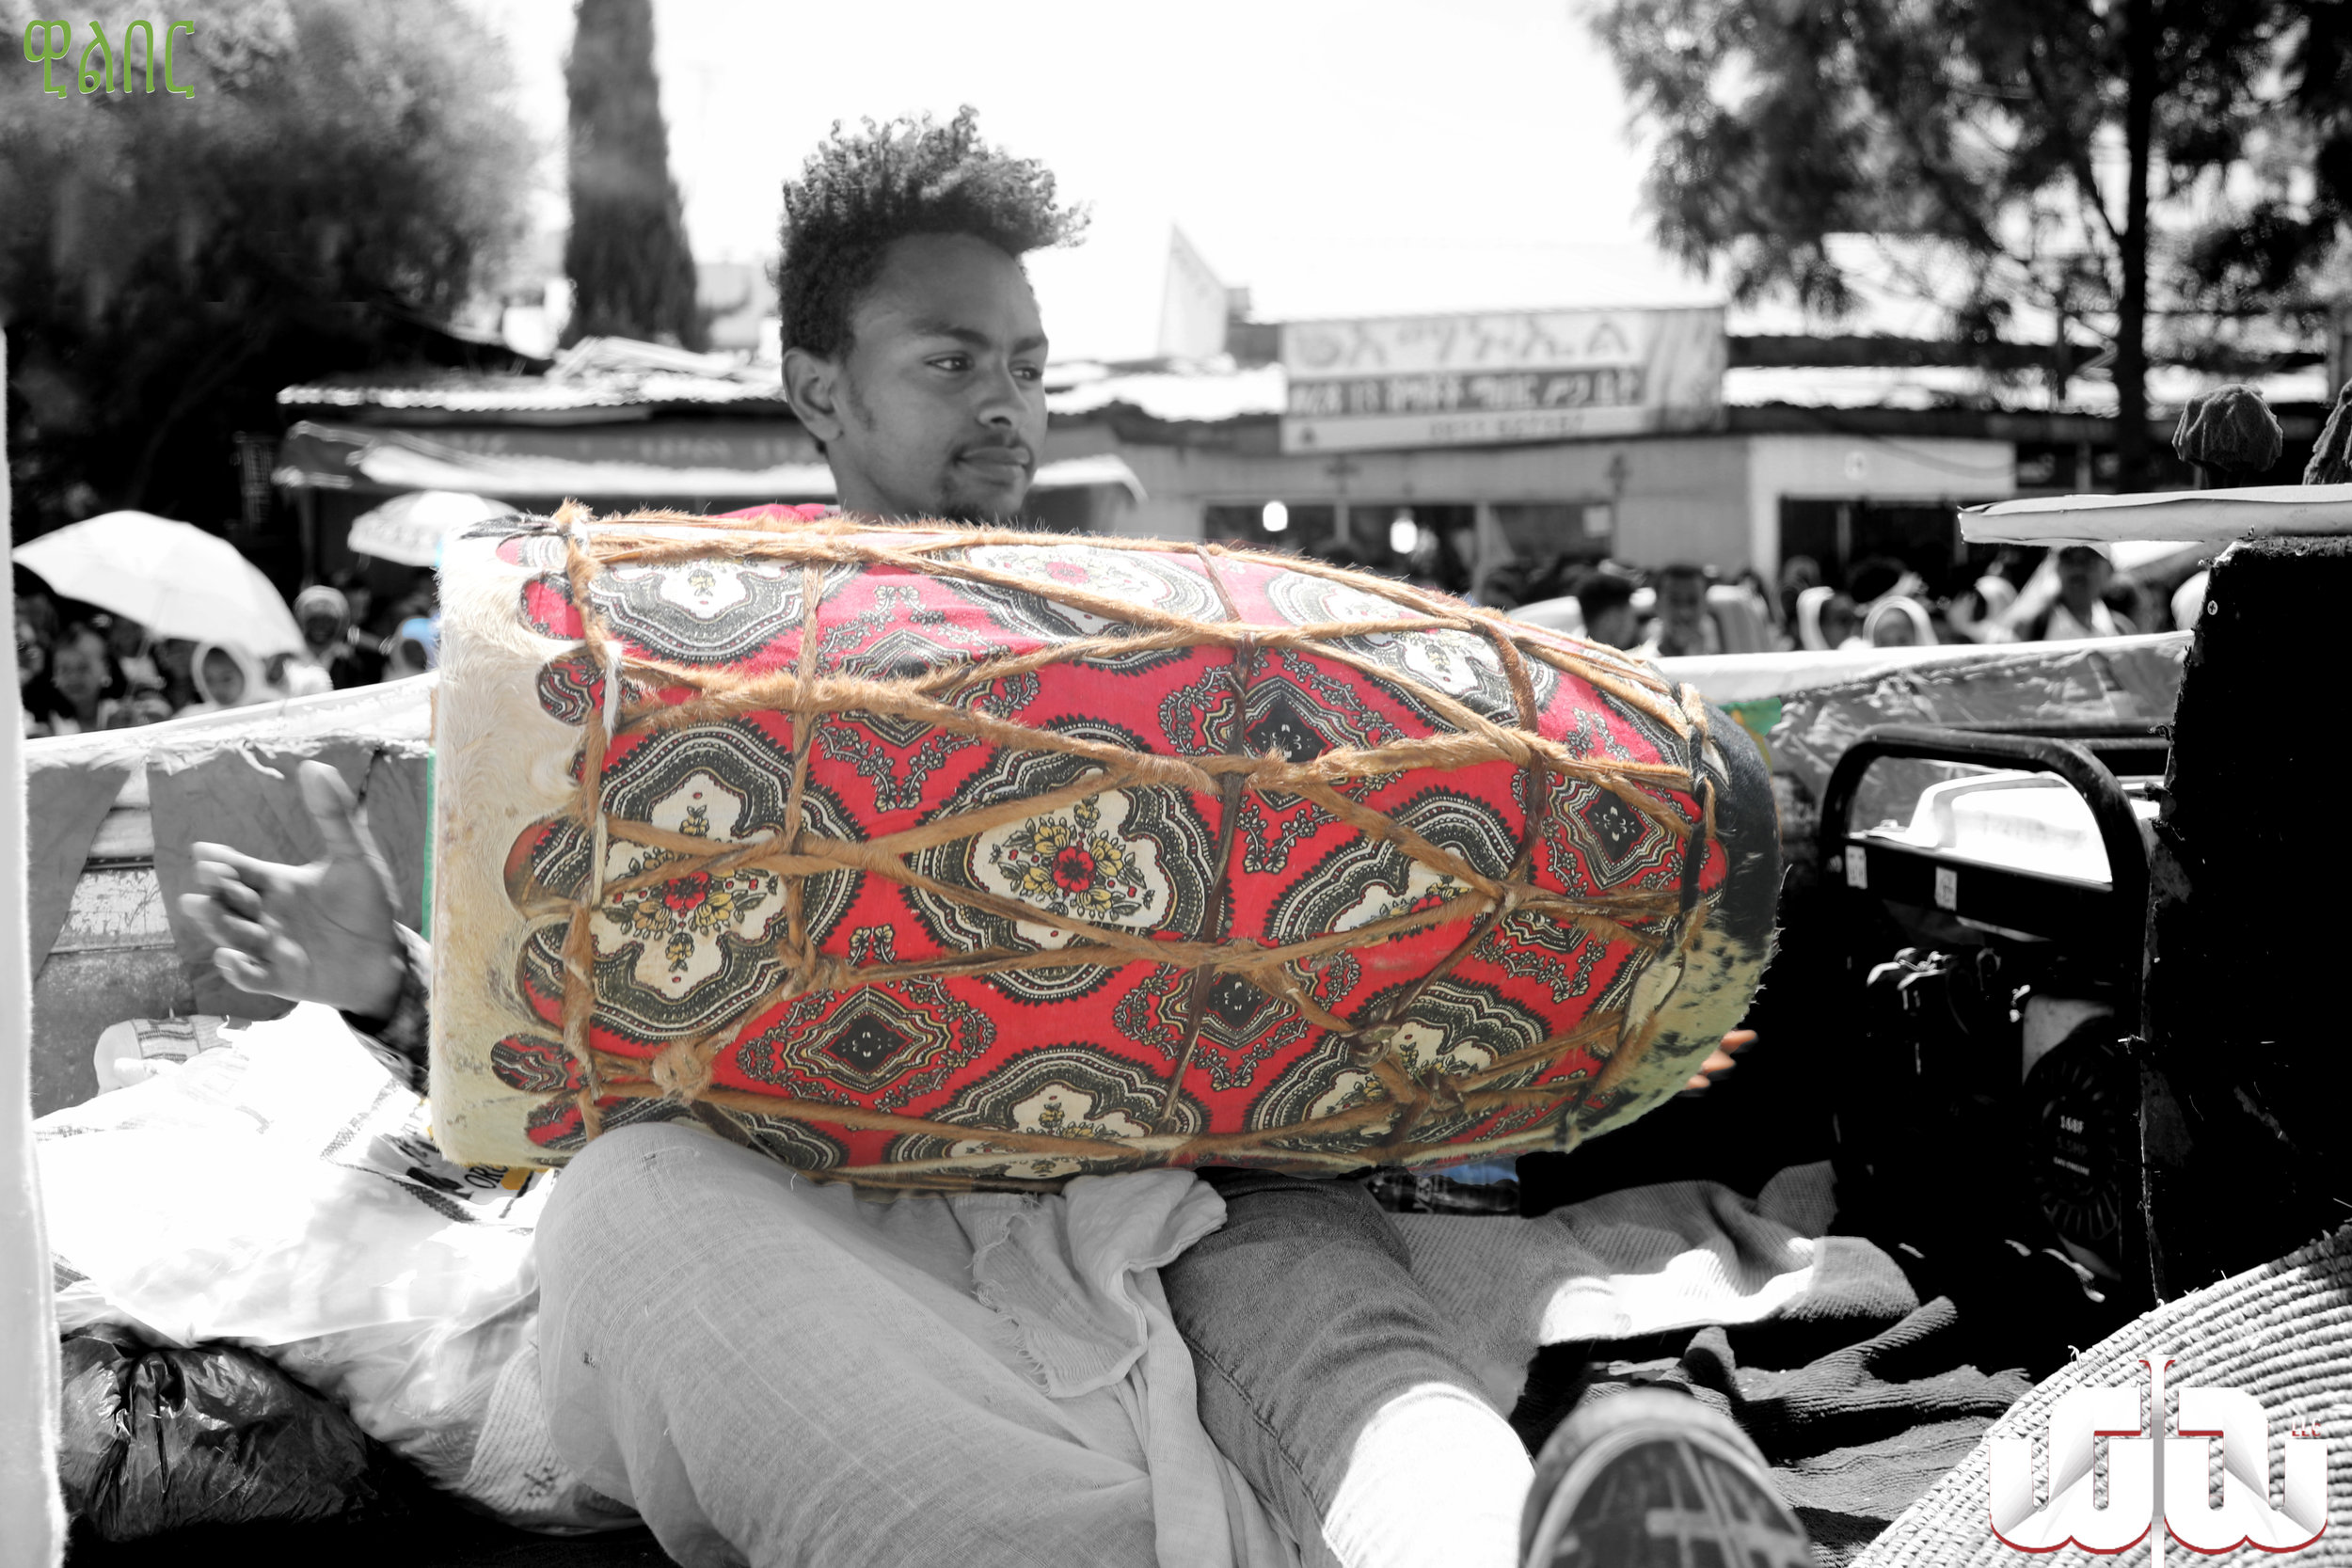 - Timket (Timkat) is the Orthodox Tewahedo celebration of Epiphany. It is celebrated on January 19th, corresponding to the 10th day of Terr in the Ethiopian calendar. Timkat celebrates the baptism of Jesus in the Jordan River.